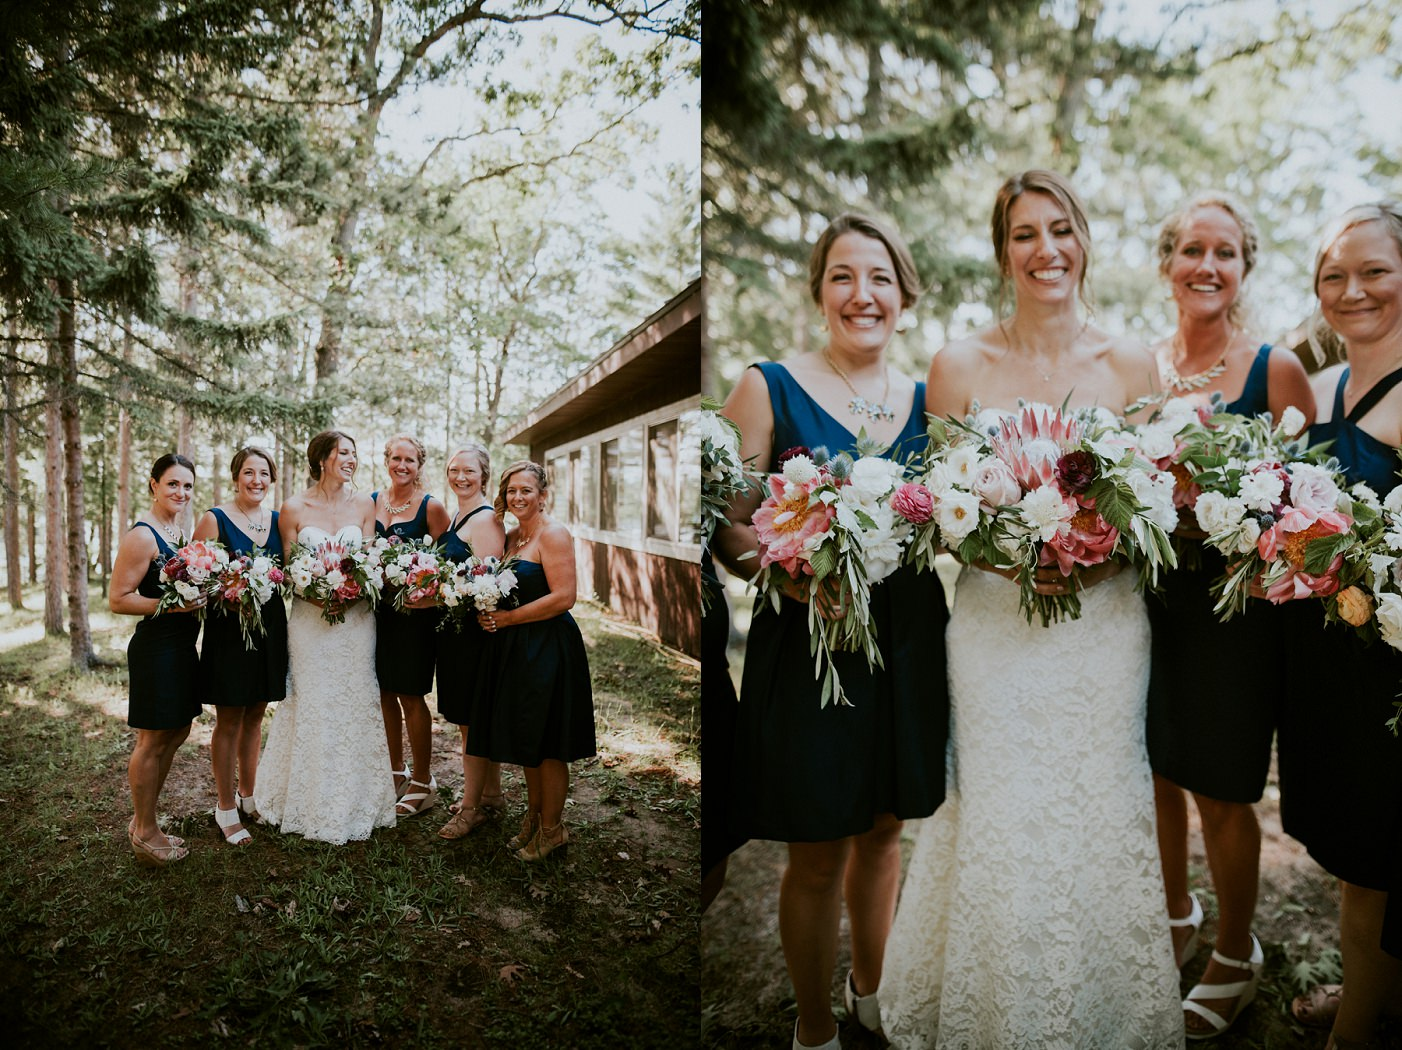 Waupaca Wisconsin Wedding Photographer, Campground Wedding, Madison Wi Wedding Photographer, DIY Flowers